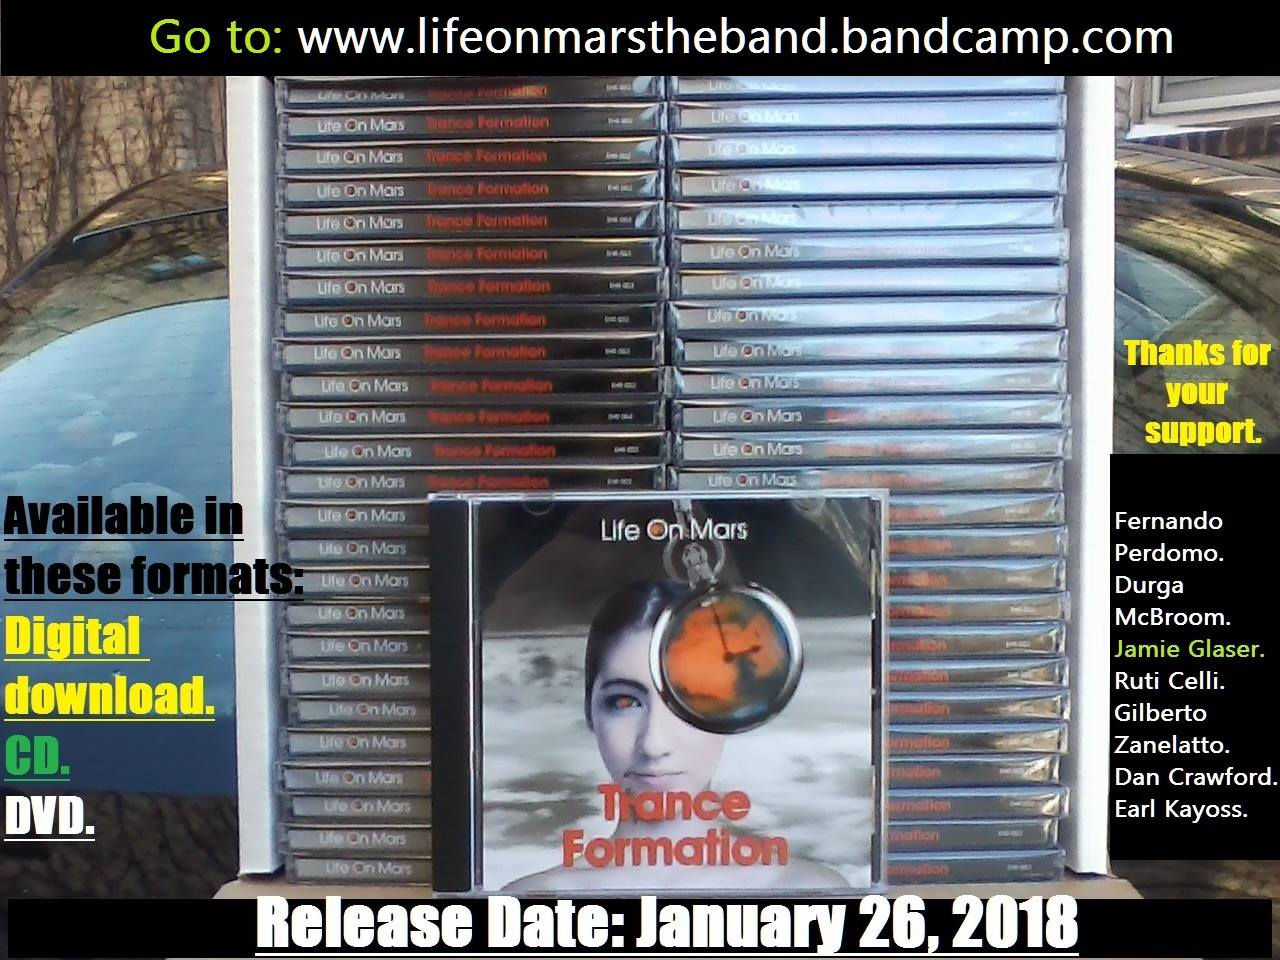 Life On Mars - Trance Formation  51 CD's